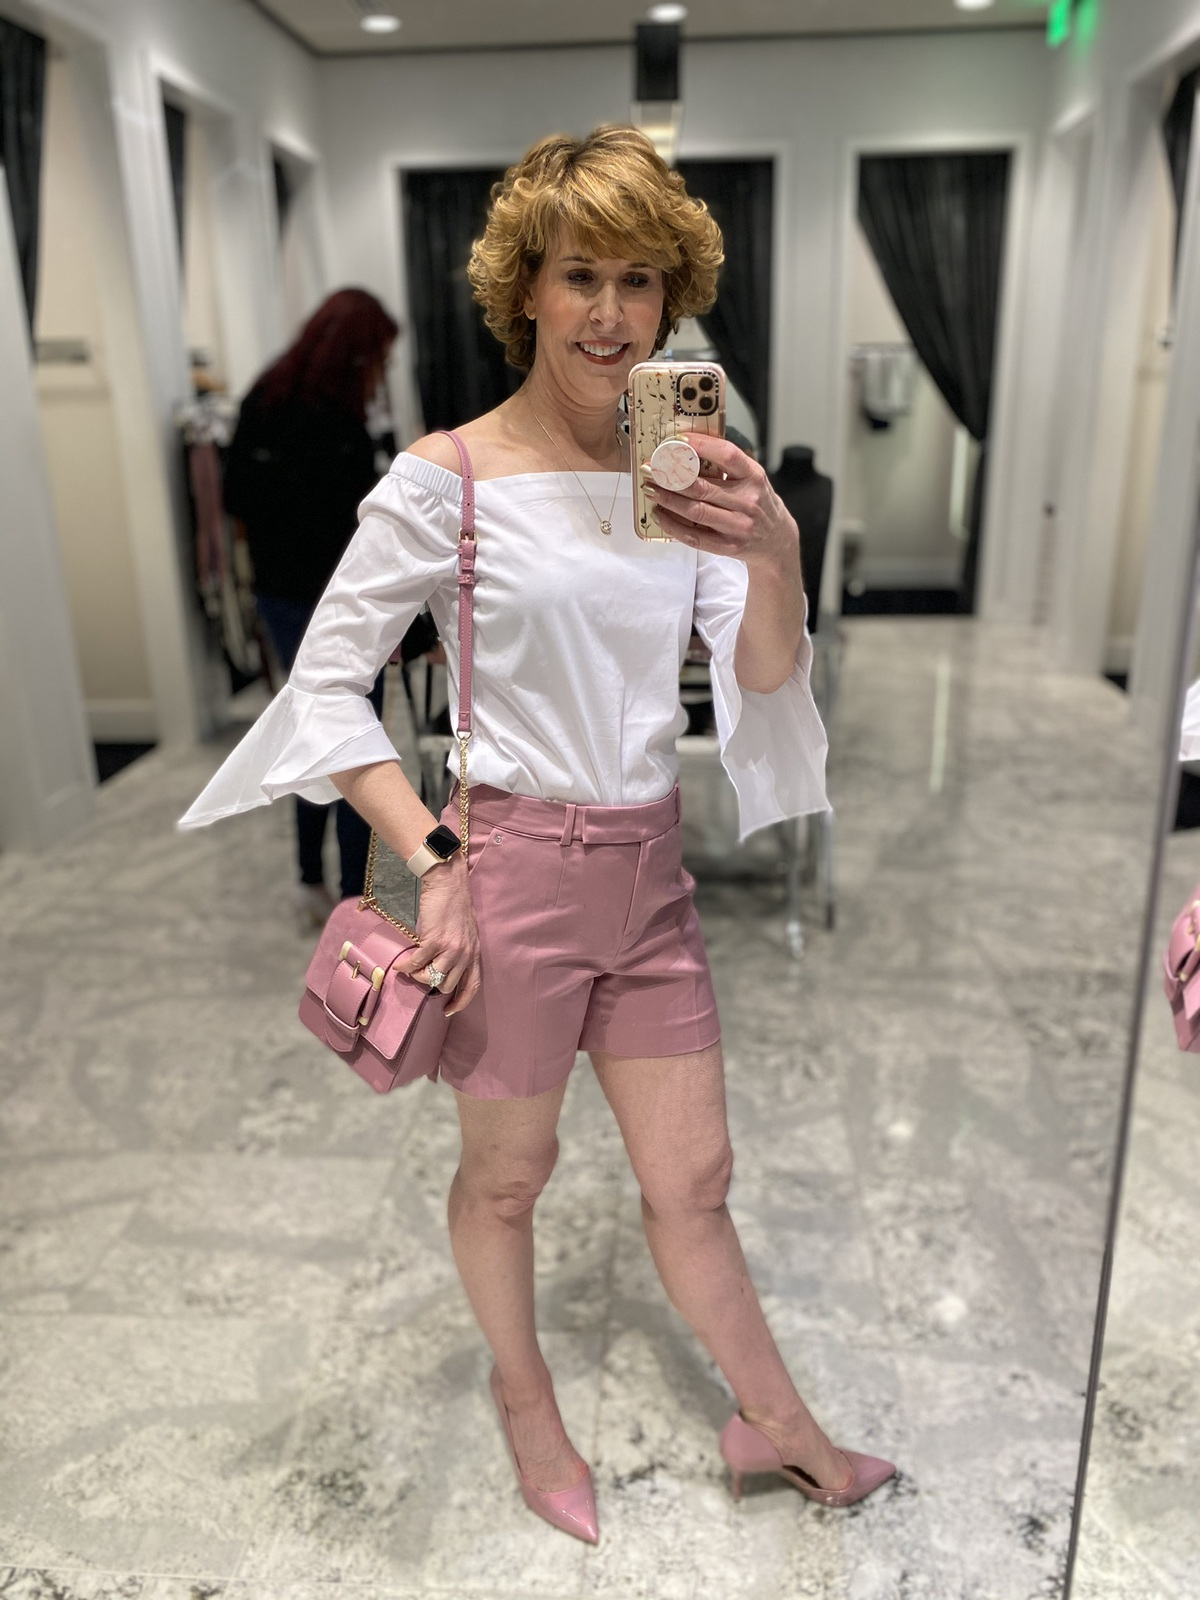 Mirror selfie of woman over 50 wearing pink shorts white off-the-shoulder top with scarf as belt pink pumps with pink purse